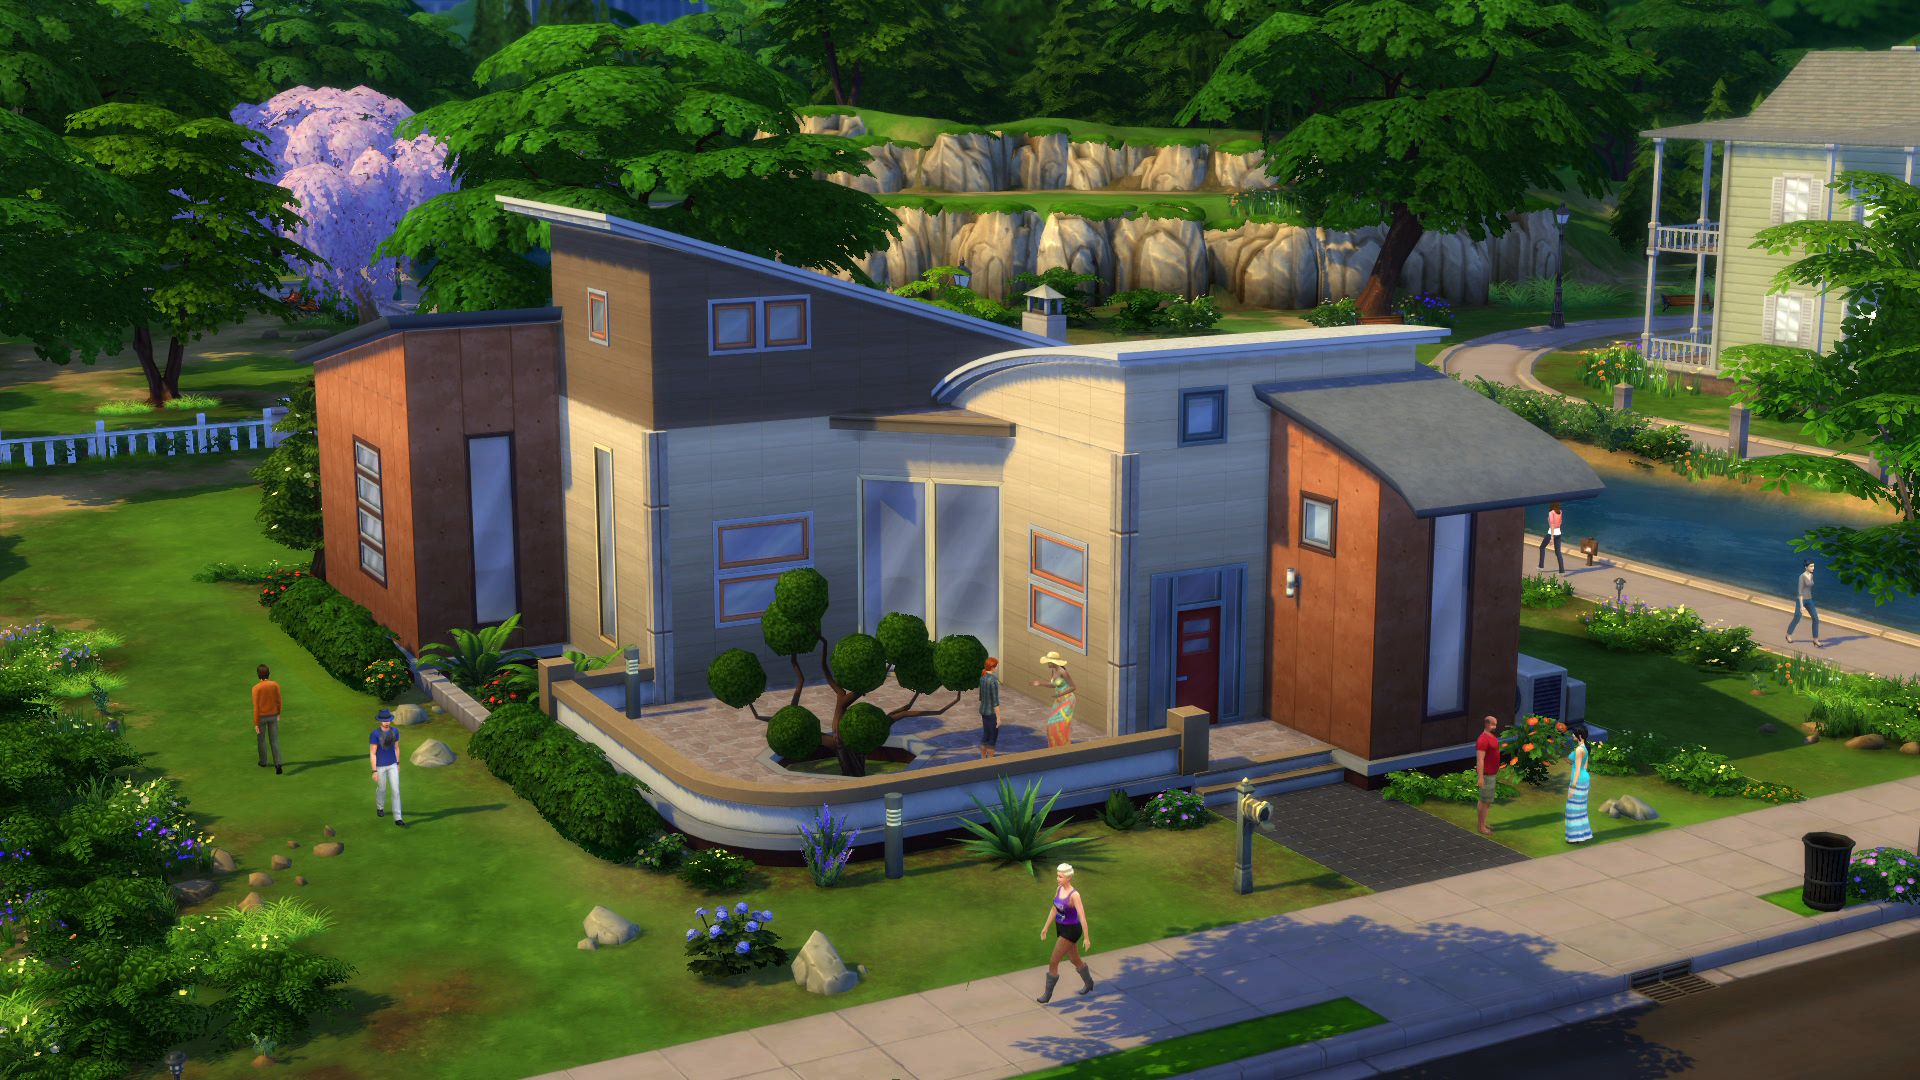 The sims 4 review toying with emotions shacknews Create a house game